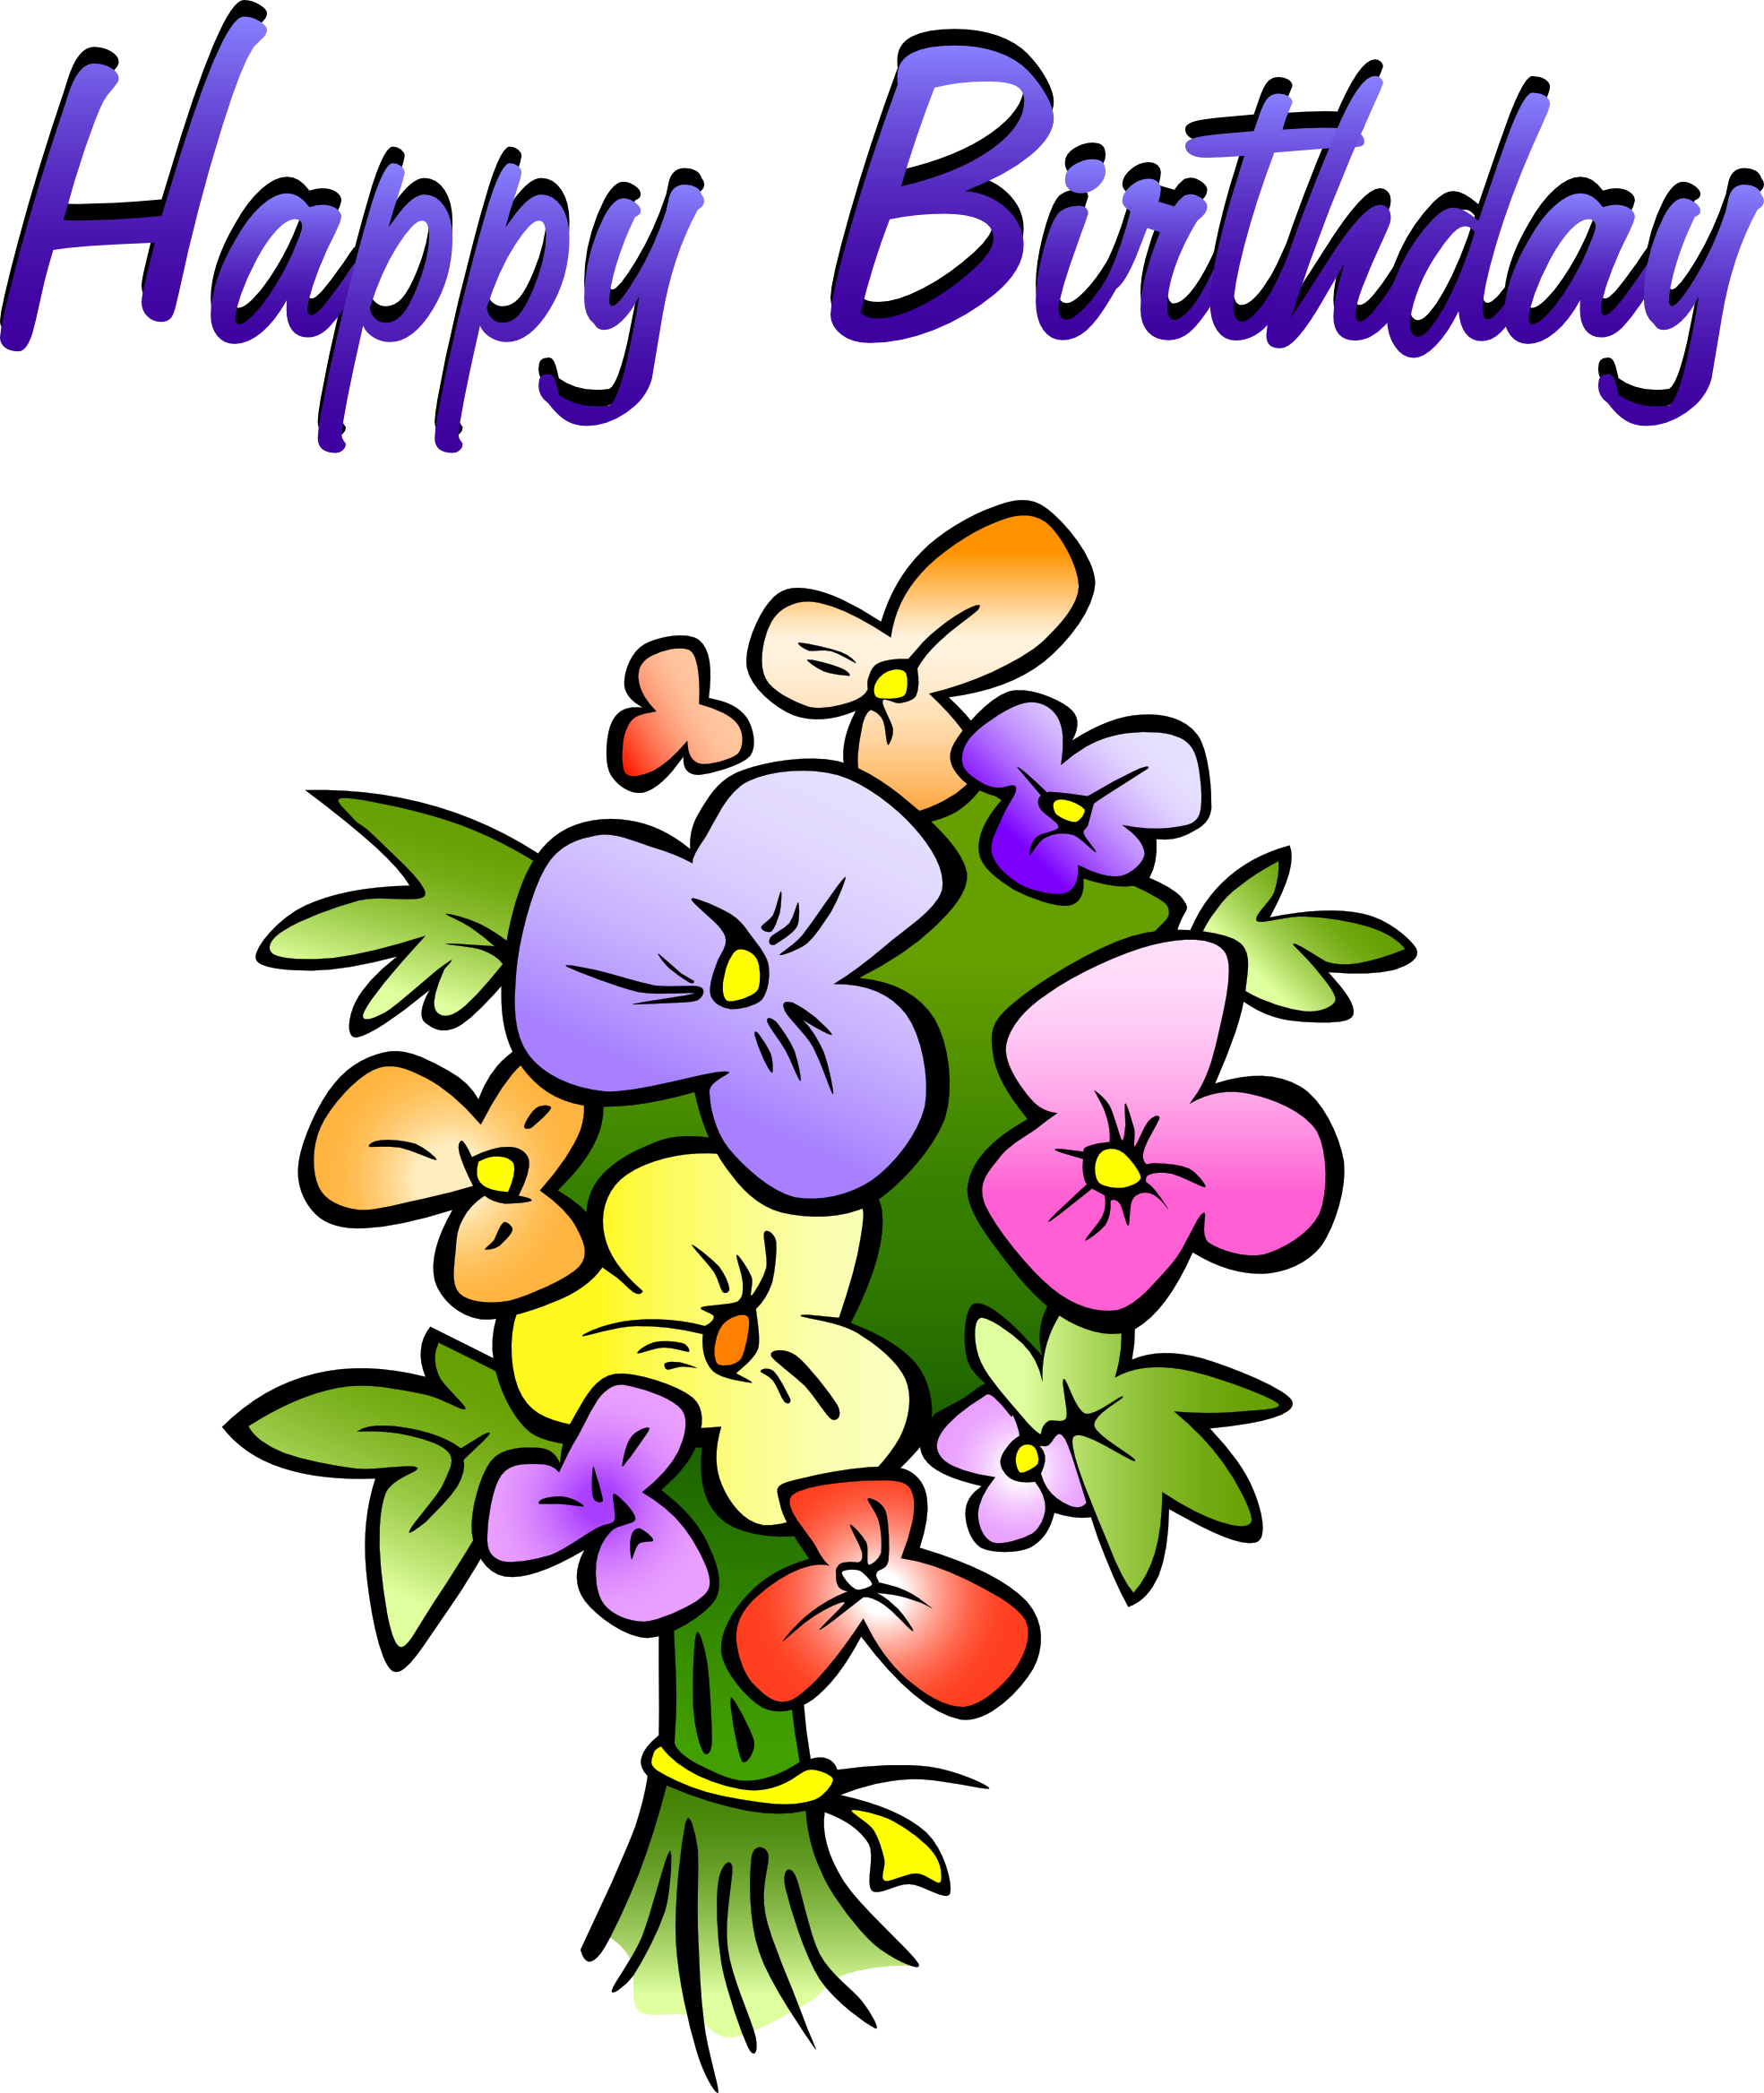 Happy birthday clipart flower for her image royalty free happy-birthday-flowers-clipart-pi5eXba4T.png (1969×2336) | Greetings ... image royalty free